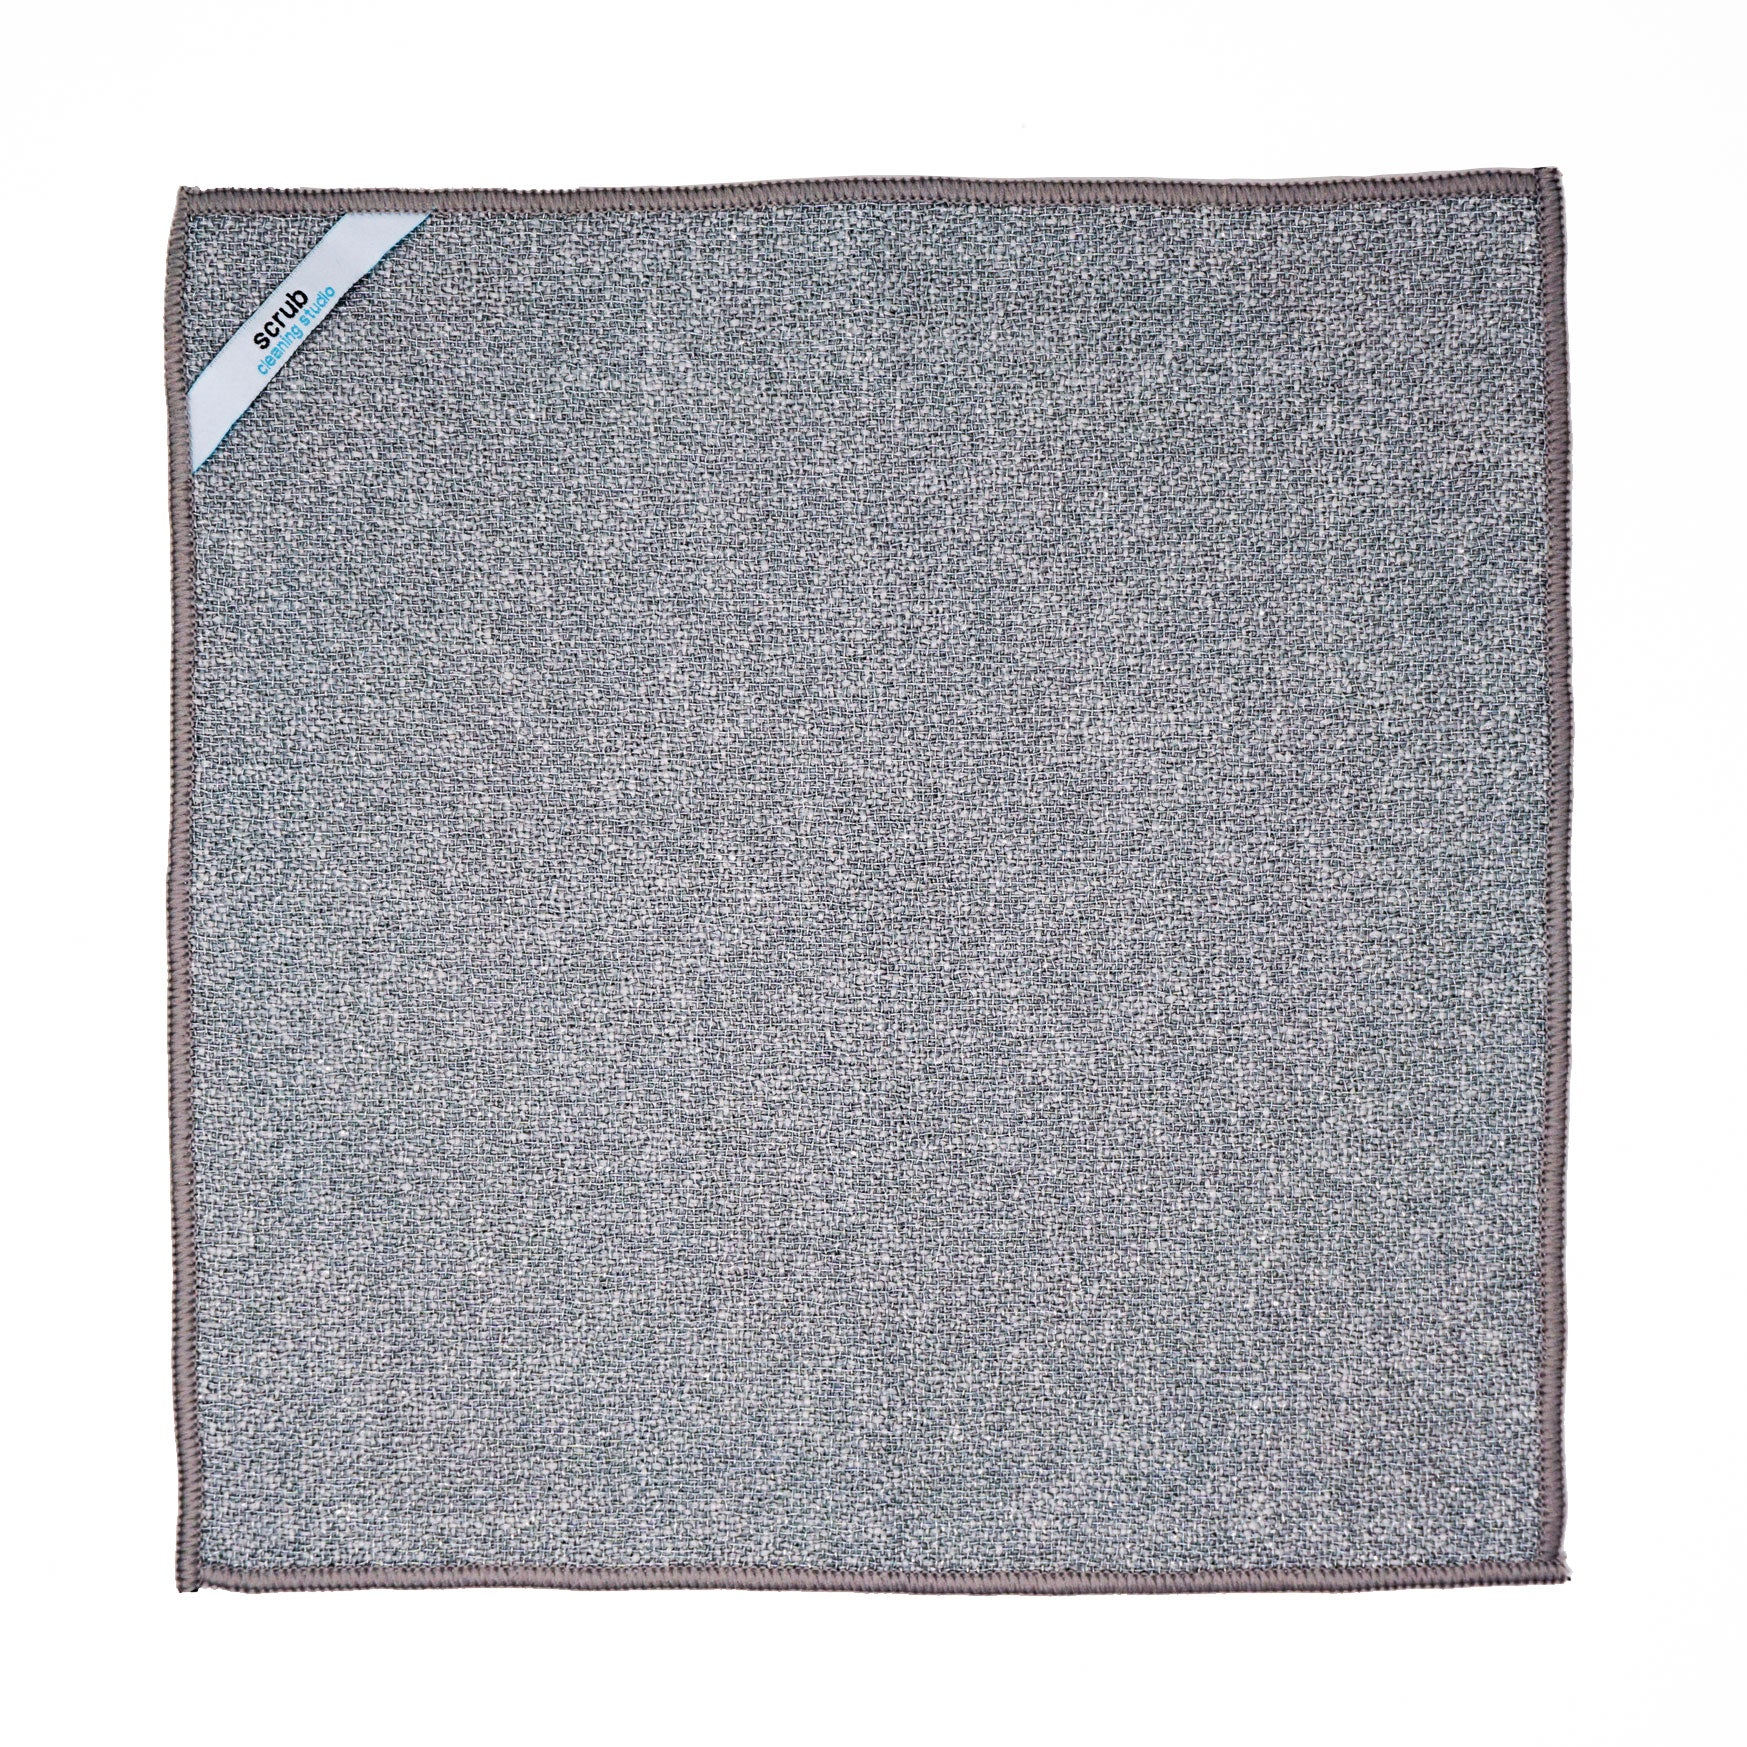 Scrub Microfiber Cleaning Cloth by Cleaning Studio